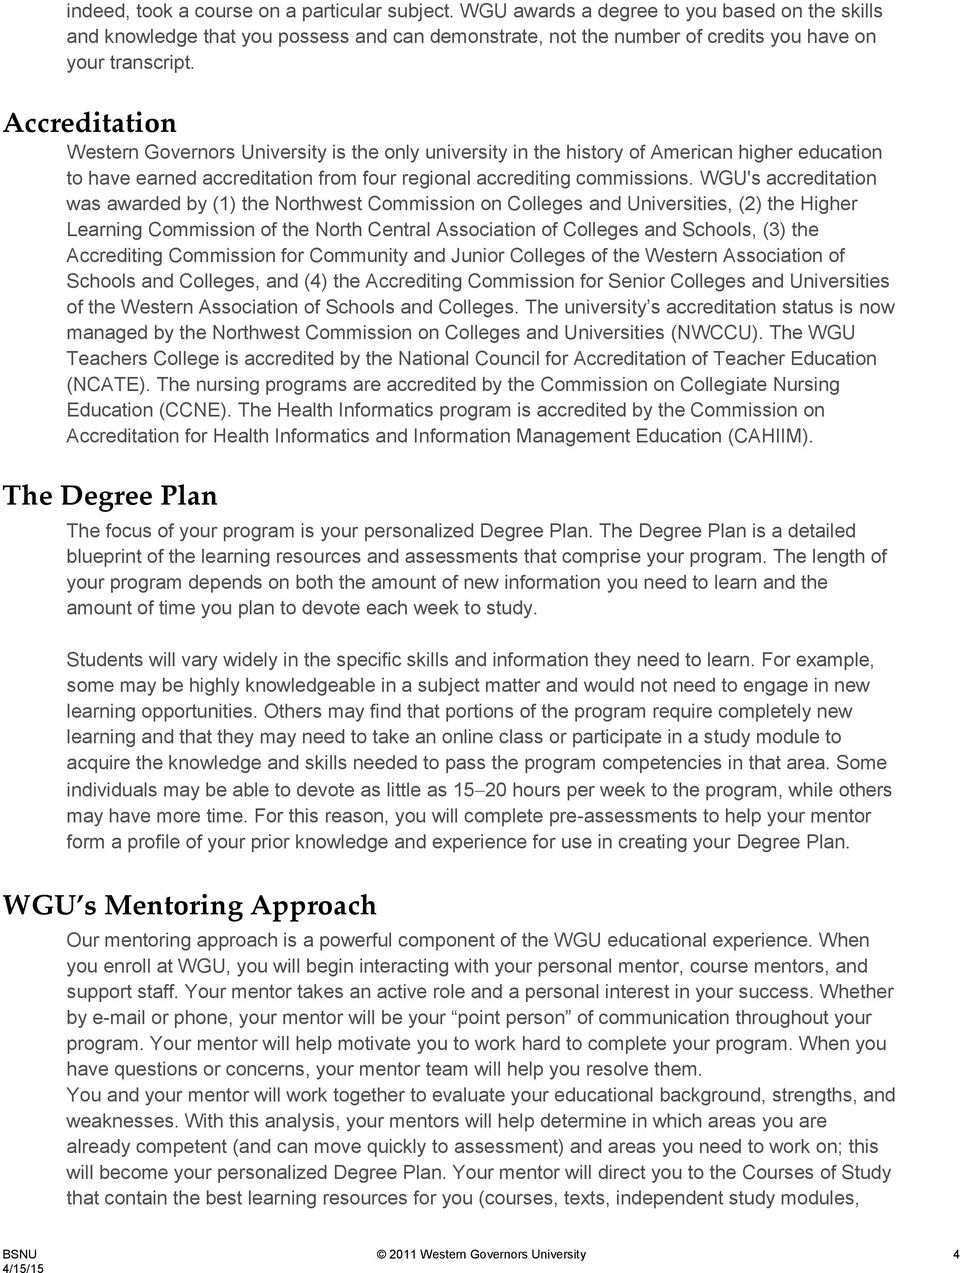 WGU's accreditation was awarded by (1) the Northwest Commission on Colleges and Universities, (2) the Higher Learning Commission of the North Central Association of Colleges and Schools, (3) the